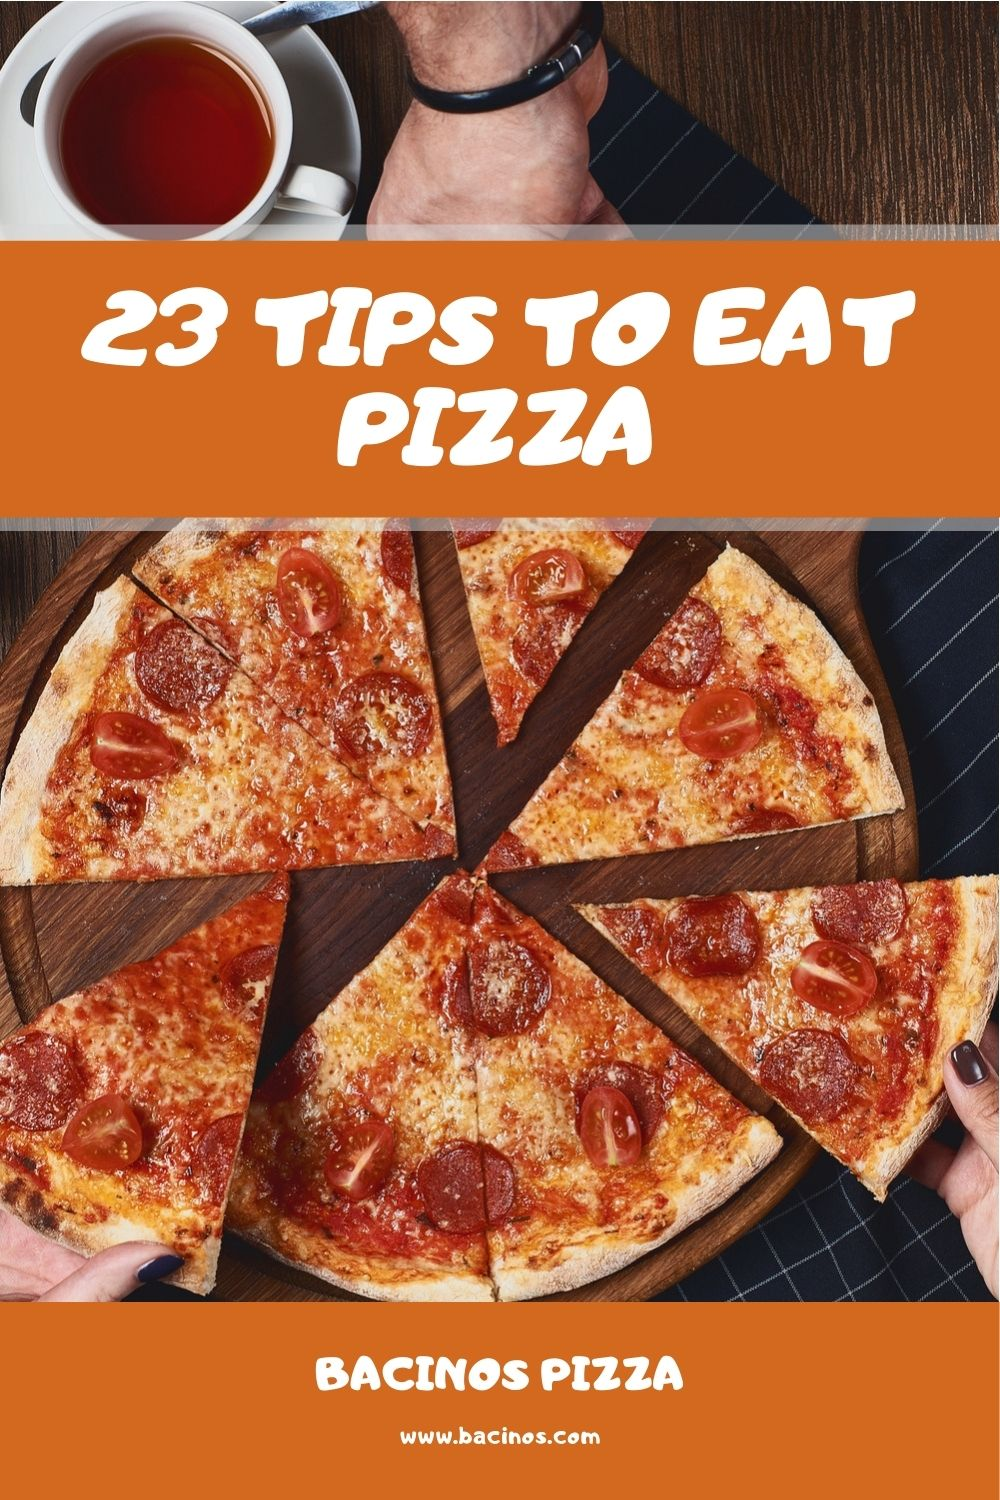 23 Tips to Eat Pizza 3